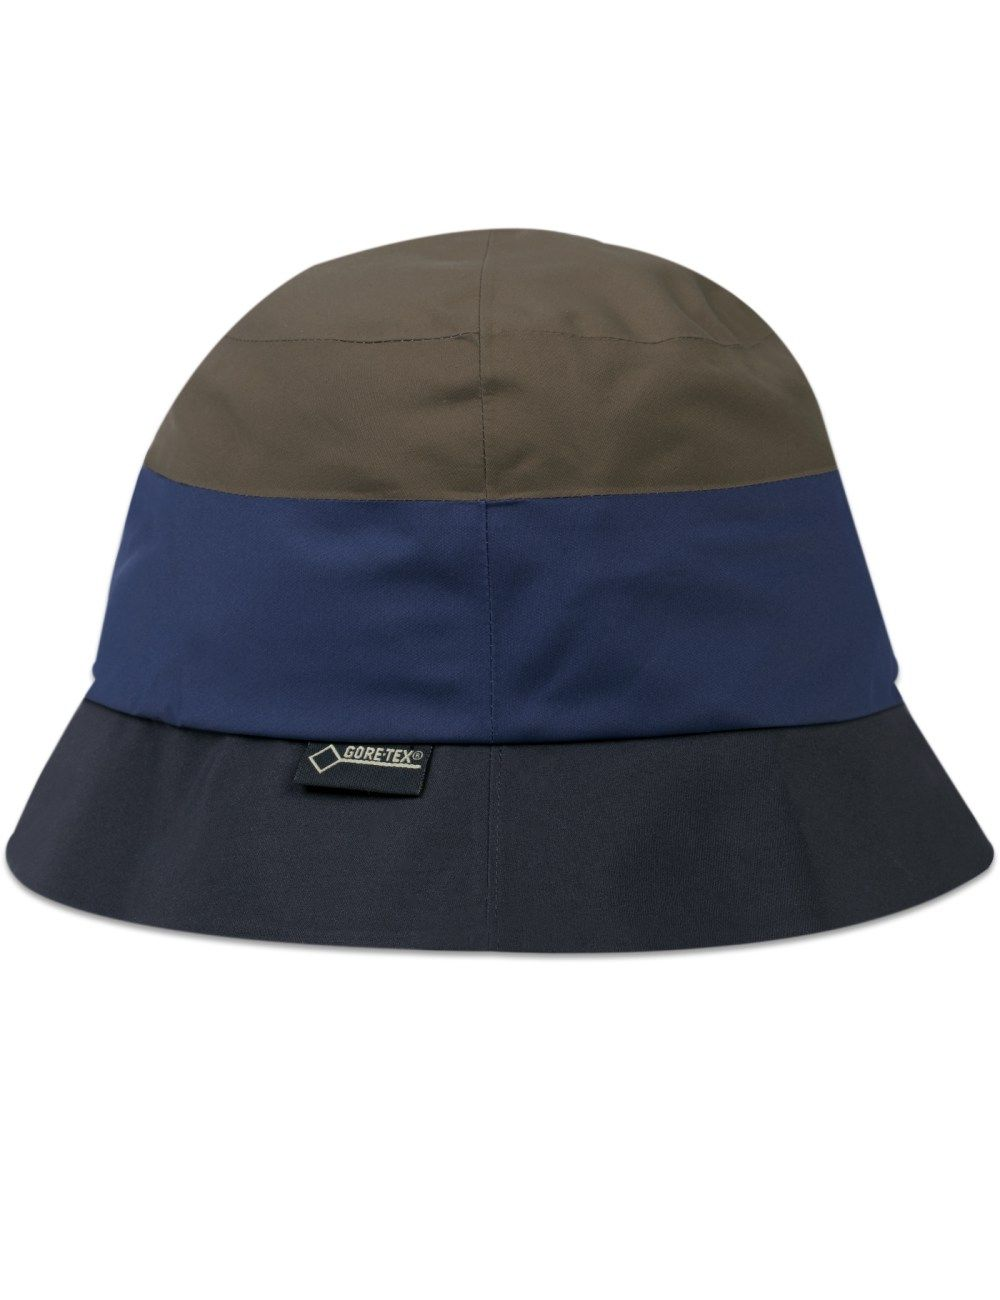 The North Face Goretex Bucket Hat  16e9705eed9